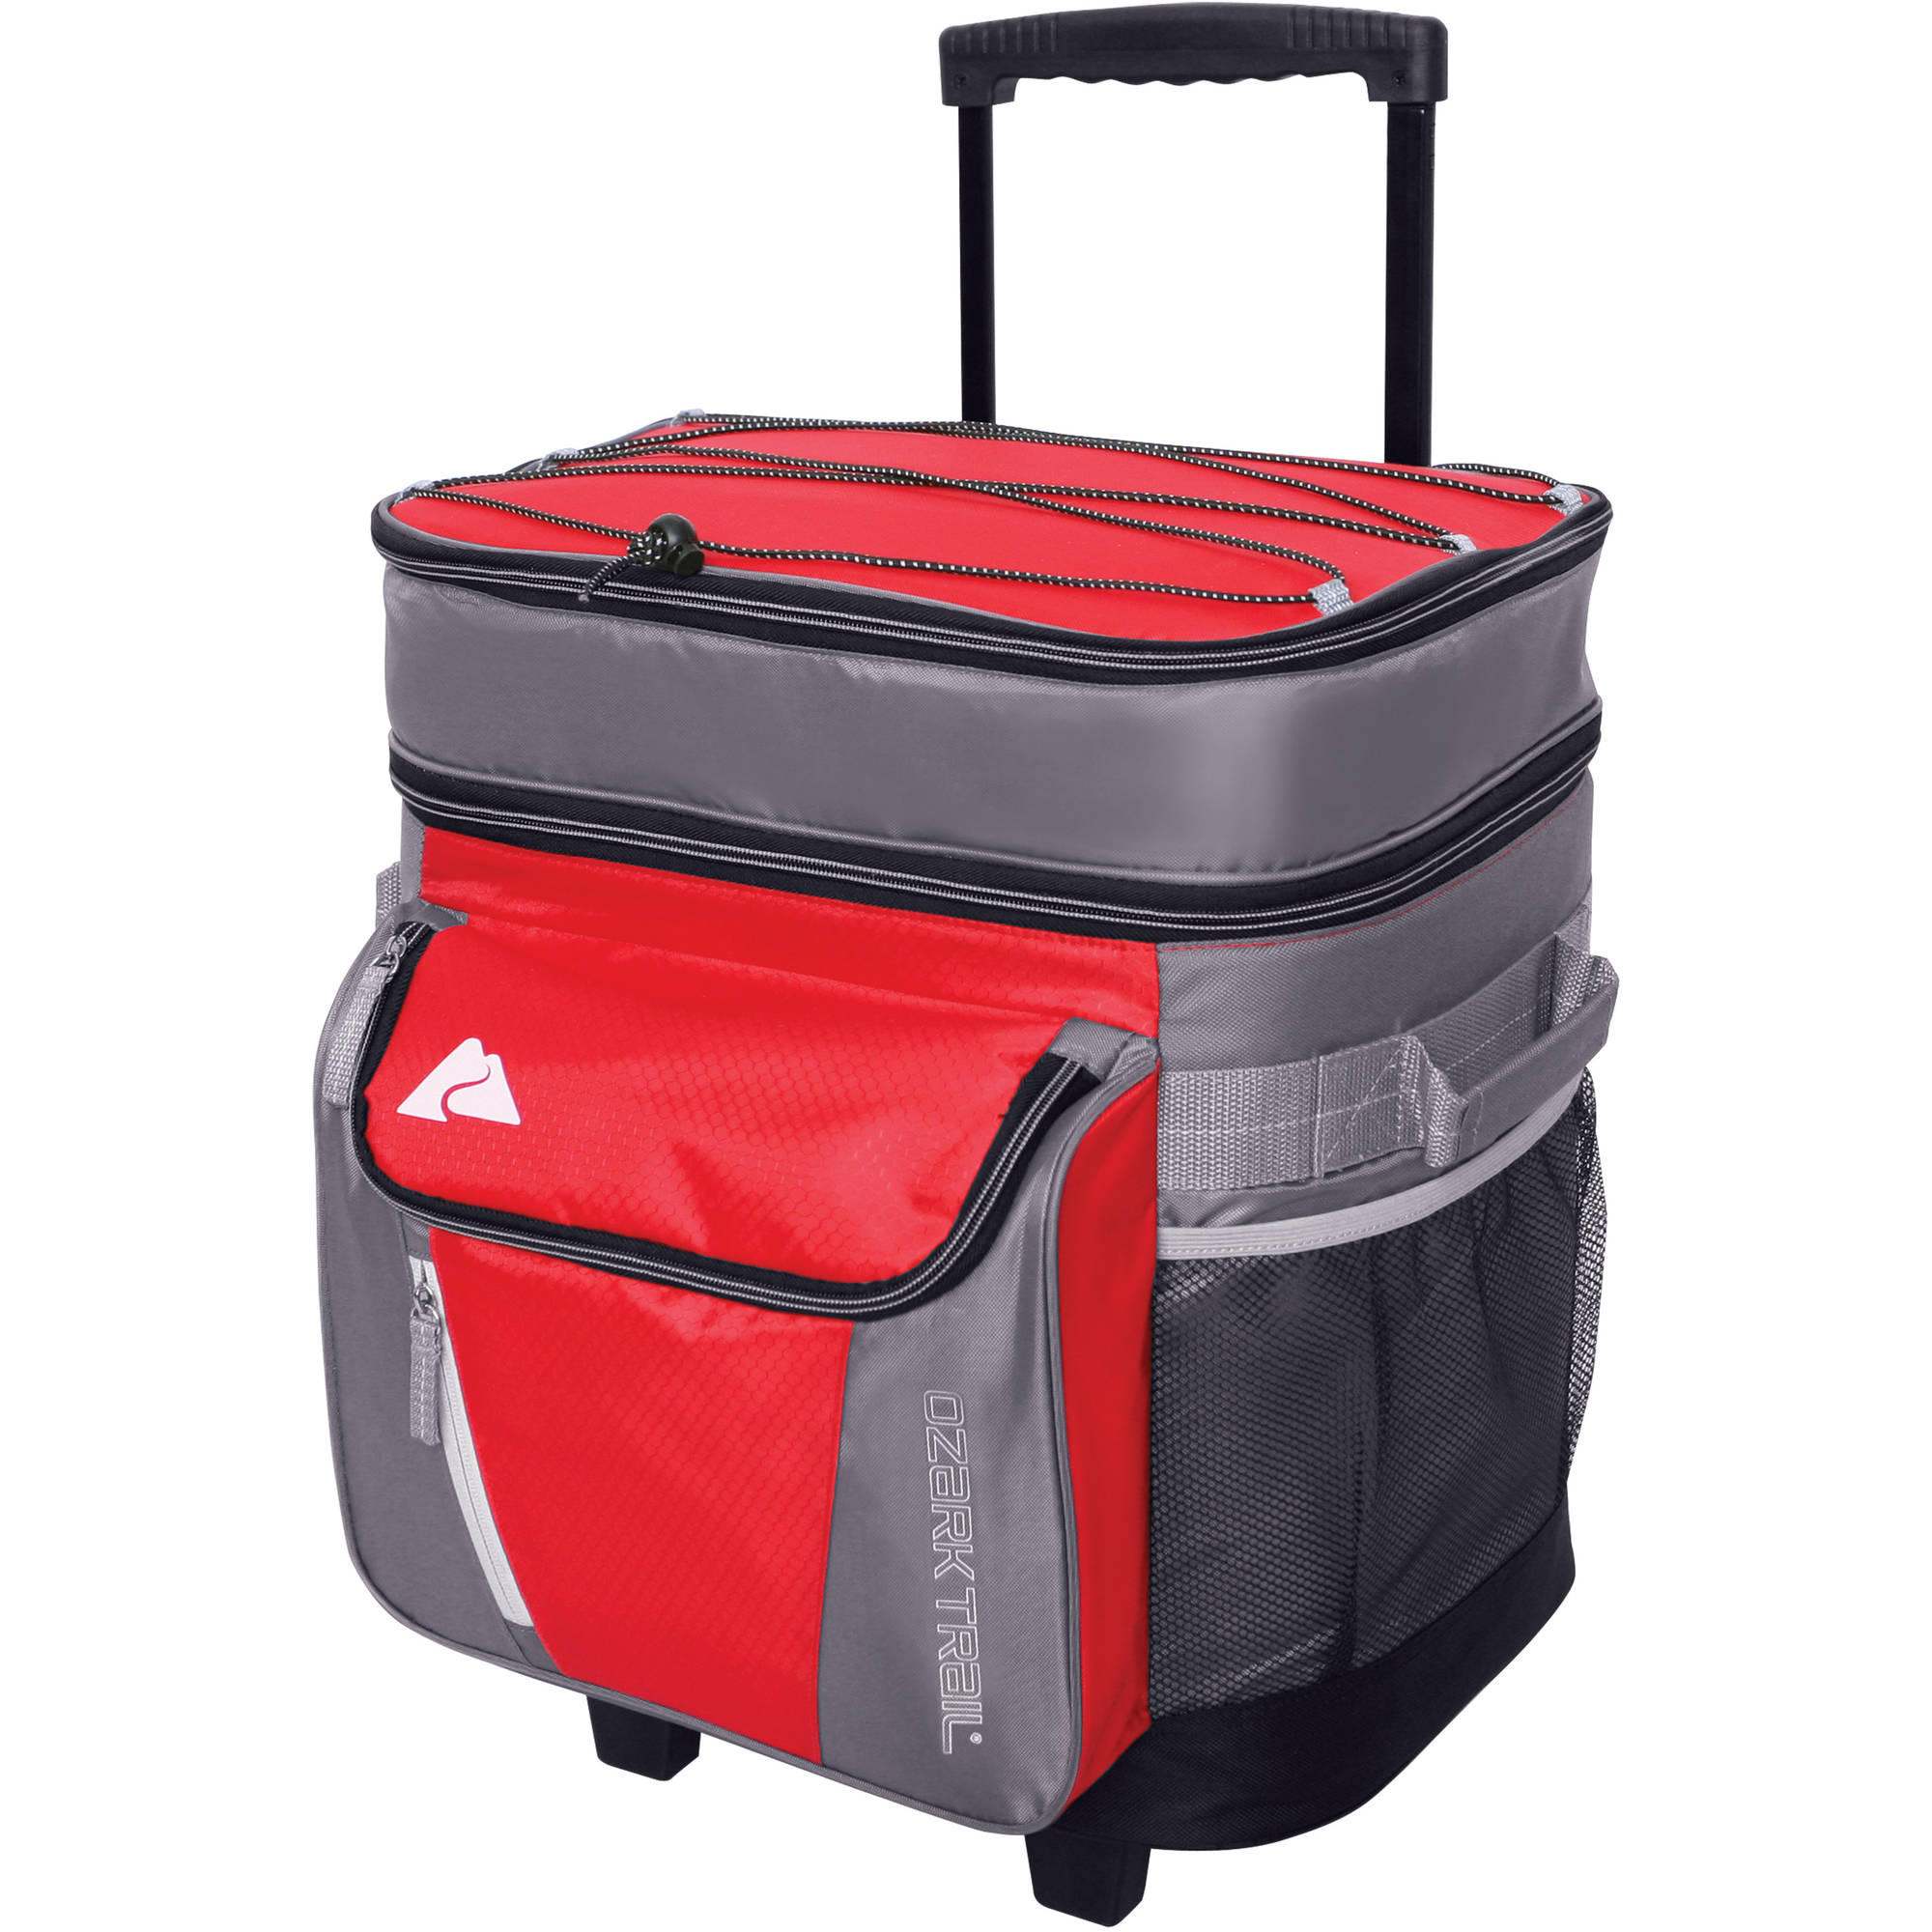 Ozark Trail 42-Can Cooler with Removable Hardliner